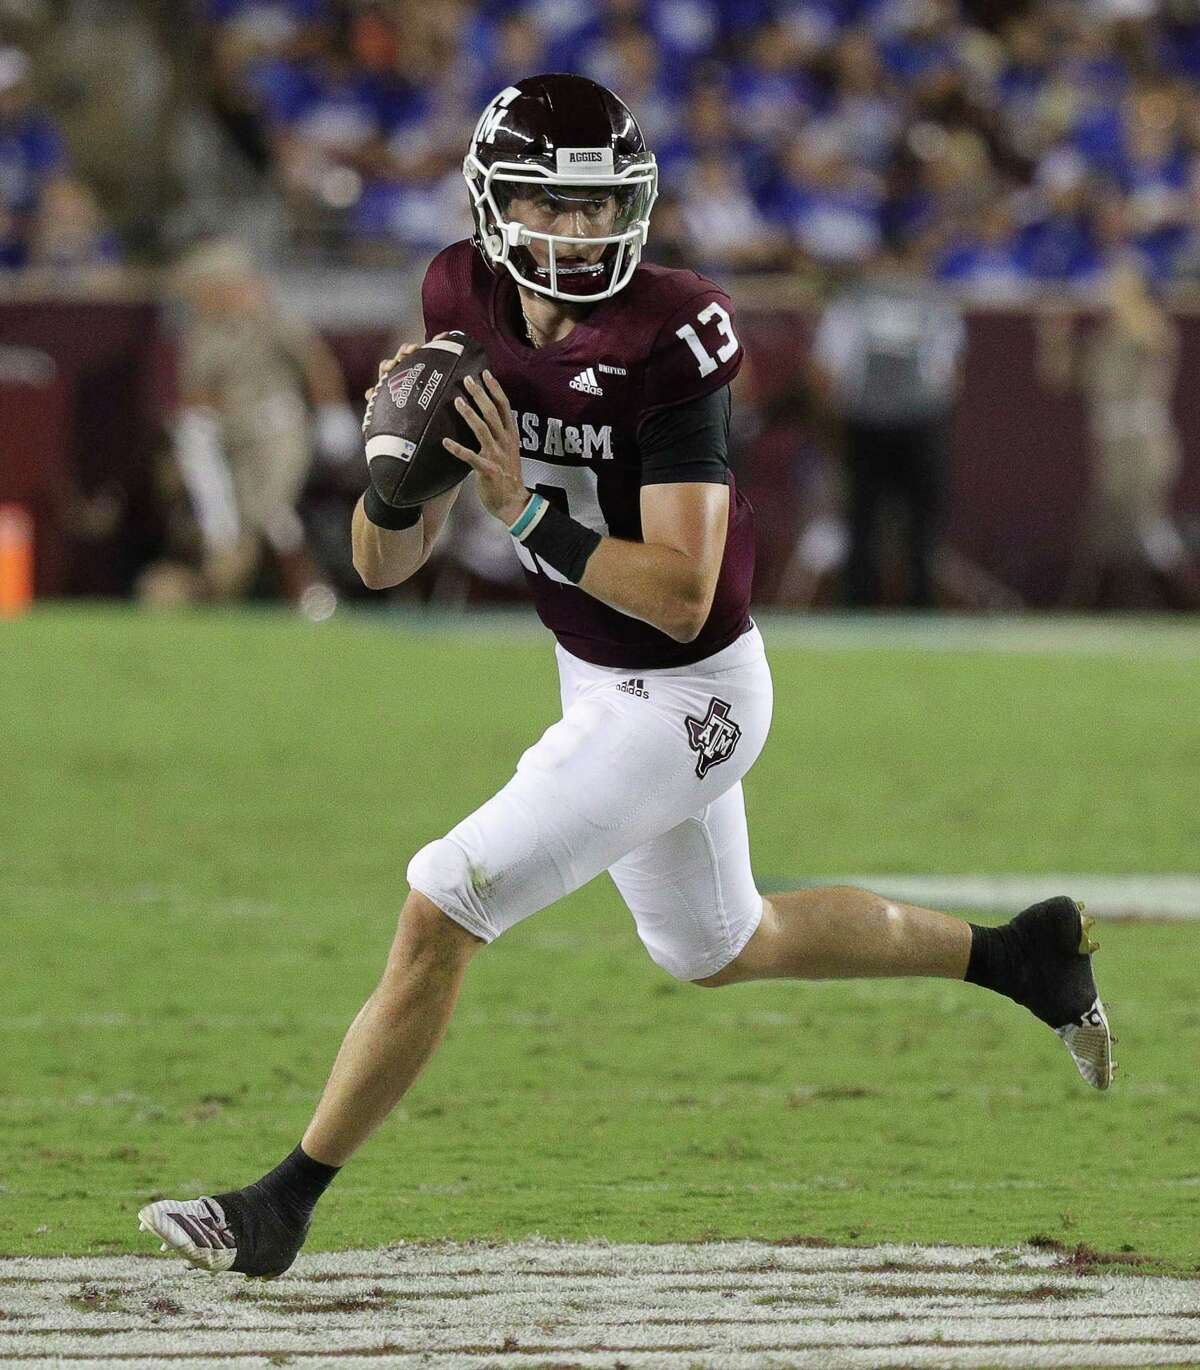 COLLEGE STATION, TEXAS - SEPTEMBER 04: Haynes King #13 of the Texas A&M Aggies rolls out for a pass in the second quarter against the Kent State Golden Flashes at Kyle Field on September 04, 2021 in College Station, Texas. (Photo by Bob Levey/Getty Images)